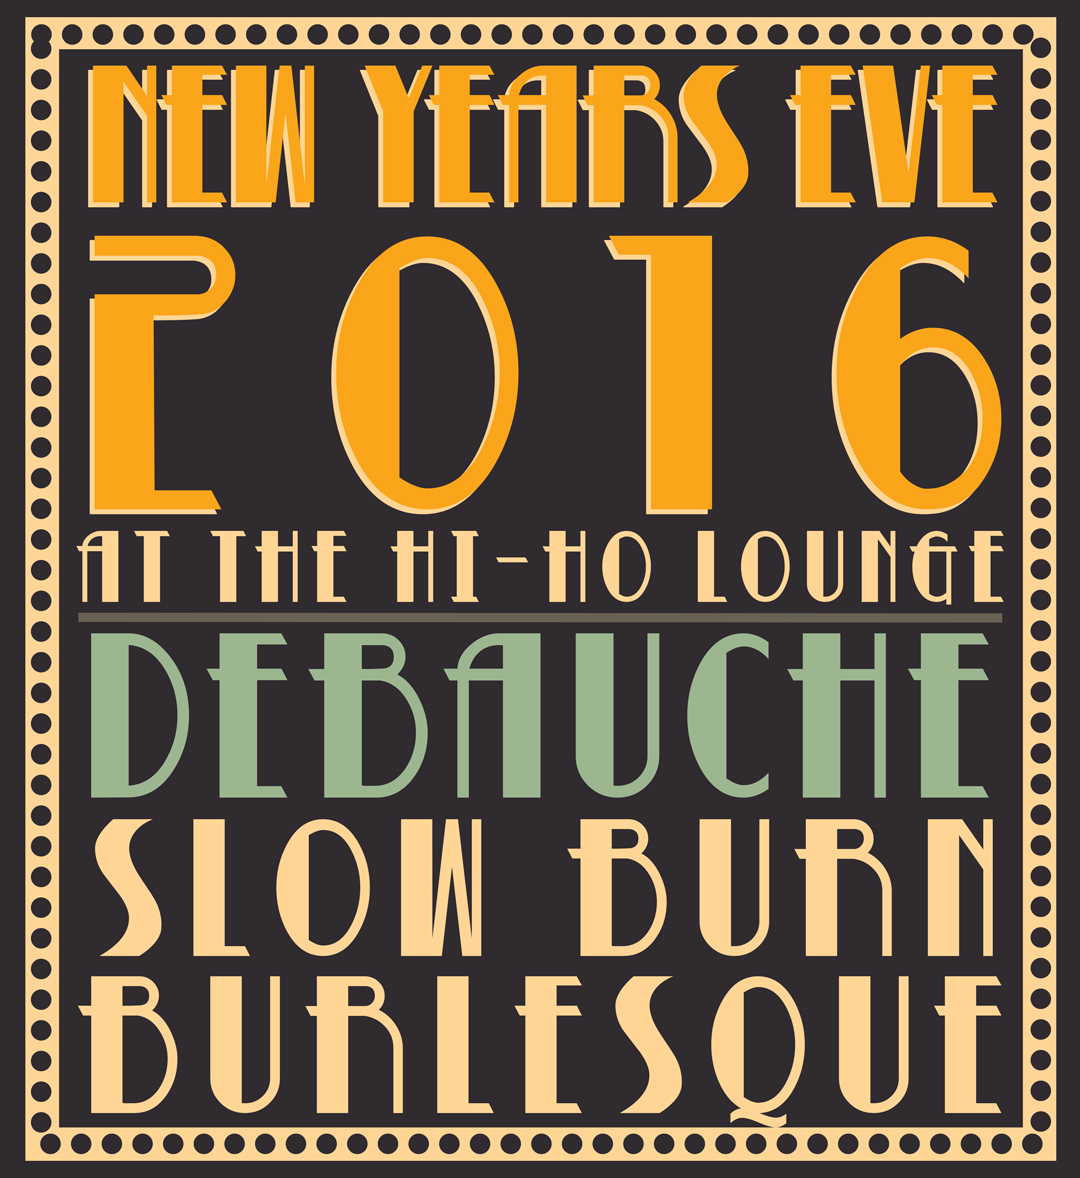 Debauche and Slow Burn Burlesque at The Hi Ho Lounge New Years Eve 2016